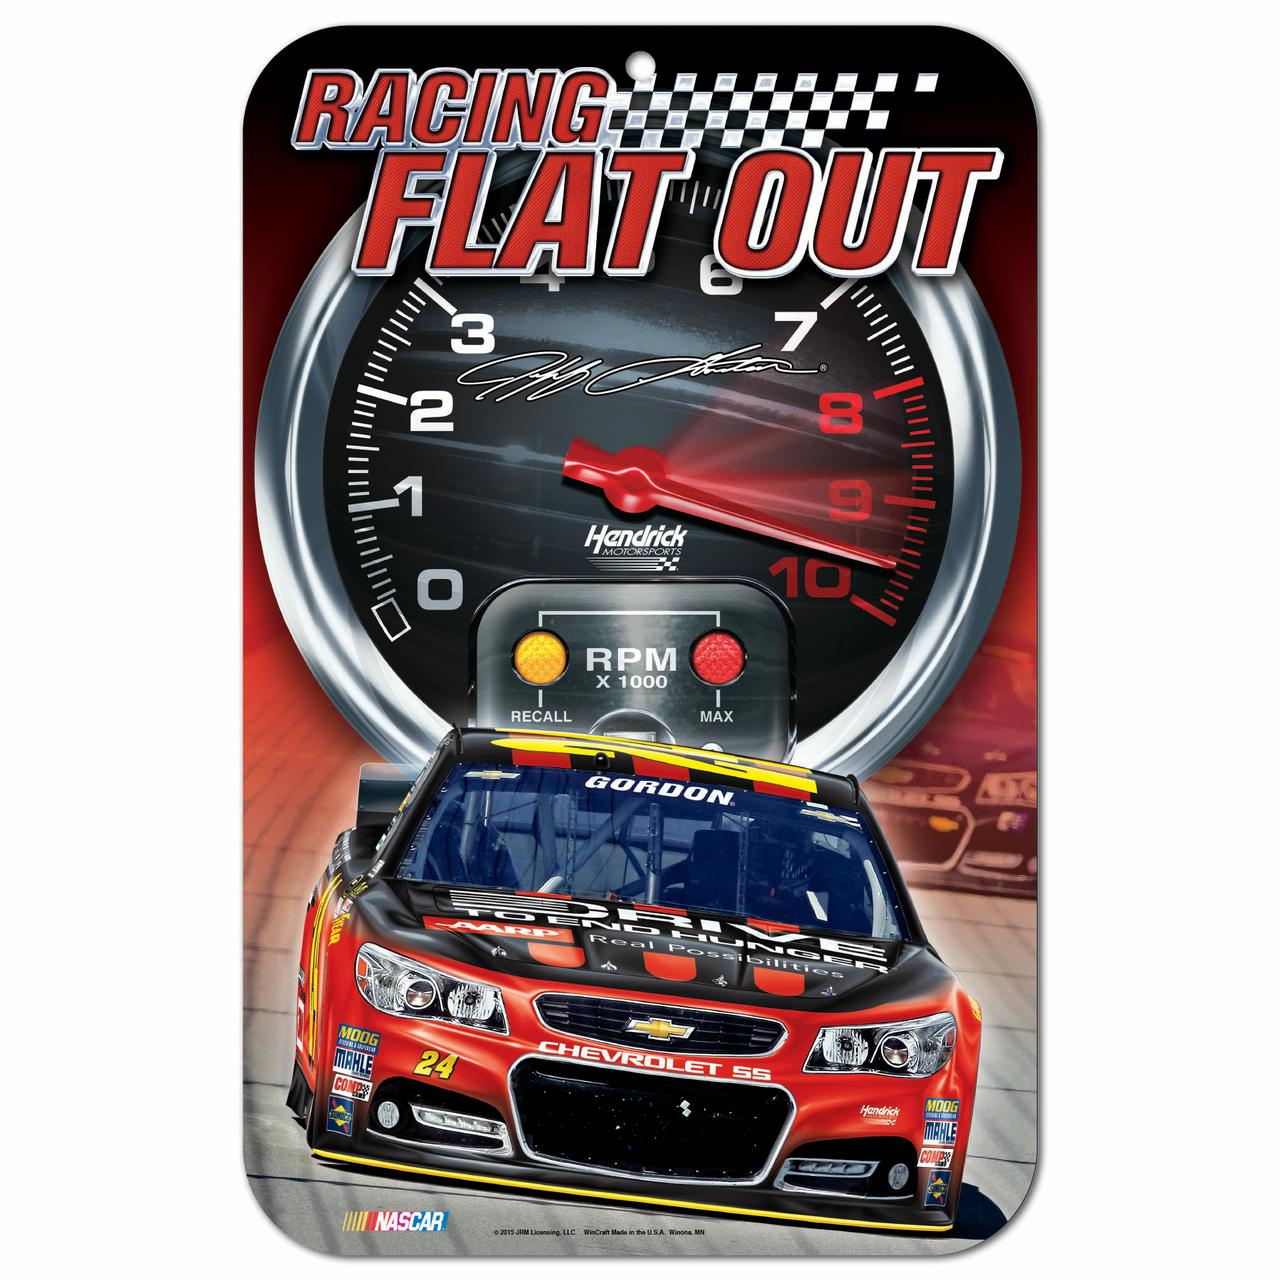 """Jeff Gordon Official Nascar 11"""" x 17"""" Plastic Wall Sign 11x17 by Wincraft 248930 by Wincraft"""